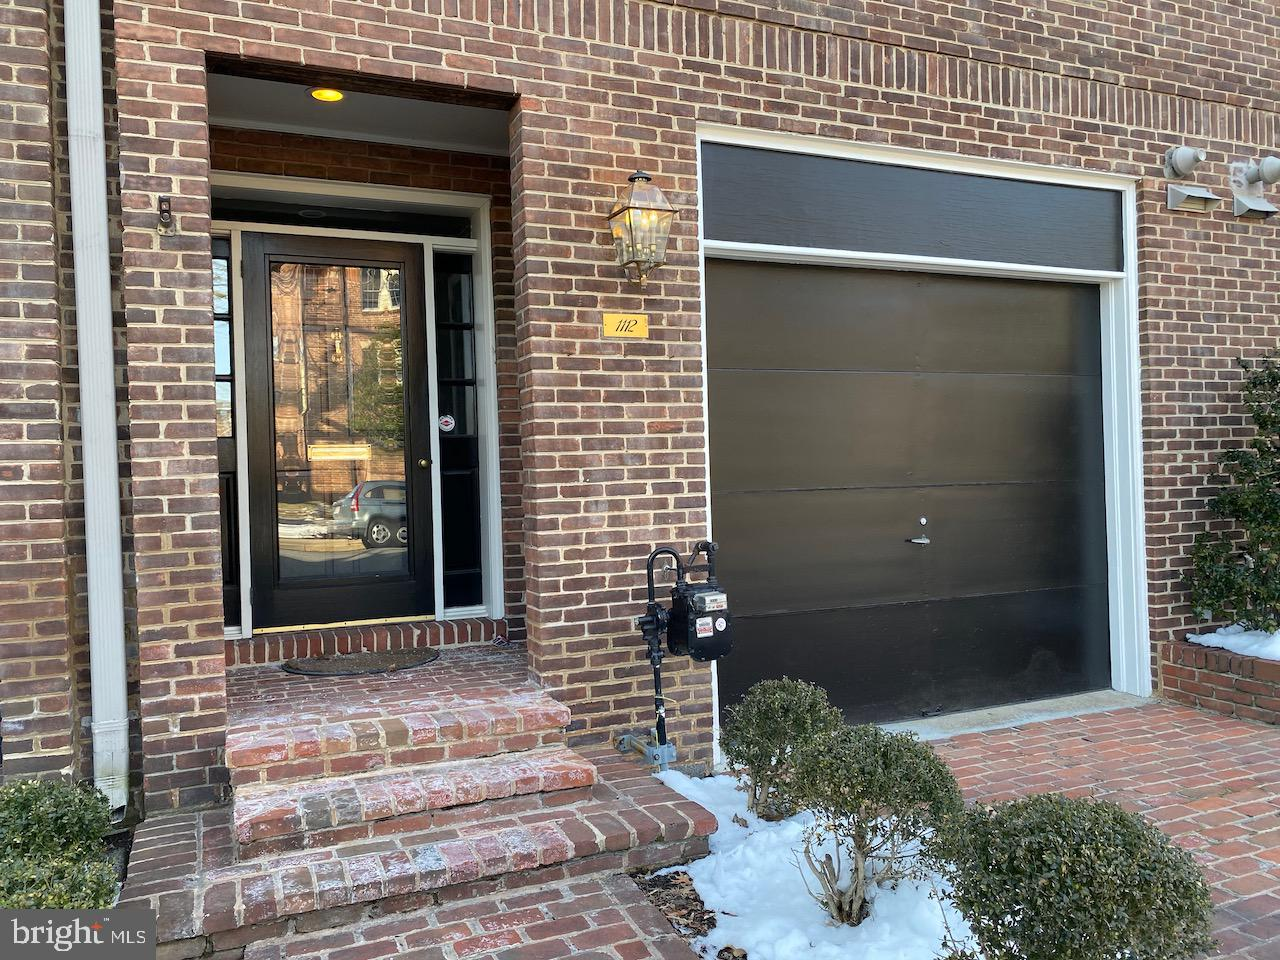 Stunning 4 level town home with spacious garage in the heart of Old Town Alexandria within walking distance to Potomac waterfront, many shops and restaurants. Numerous update include brand new Quartz counters, Bosch dishwasher and water heater(Dec 2019). Built-in Subzero refrigerator built-in microwave, gas range and double sink. Breakfast room with built-in bookcases and pantry closet. List of numerous updates available upon request. Hardwood floors throughout on all four levels and three wood burning fireplaces. The entry level family room features a unique corner wet- bar, third full bath, wood burning fireplace and French doors to the fully fenced backyard with deck, patio and storage shed. Beautiful main level Living room with another wood burning fireplace and French doors opening to Juliette balconies. Formal Dining room with chair rail and crown moldings. Very large master suite with a wood burning fireplace flanked by double closets. Second bedroom, 2 full bath and convenient laundry area are also on upper level 1. Upper level 2 includes the third bedroom, a full bath and large gabled storage room. Convenient to DC and walking distance to everything that Old Town Alexandria has to offer